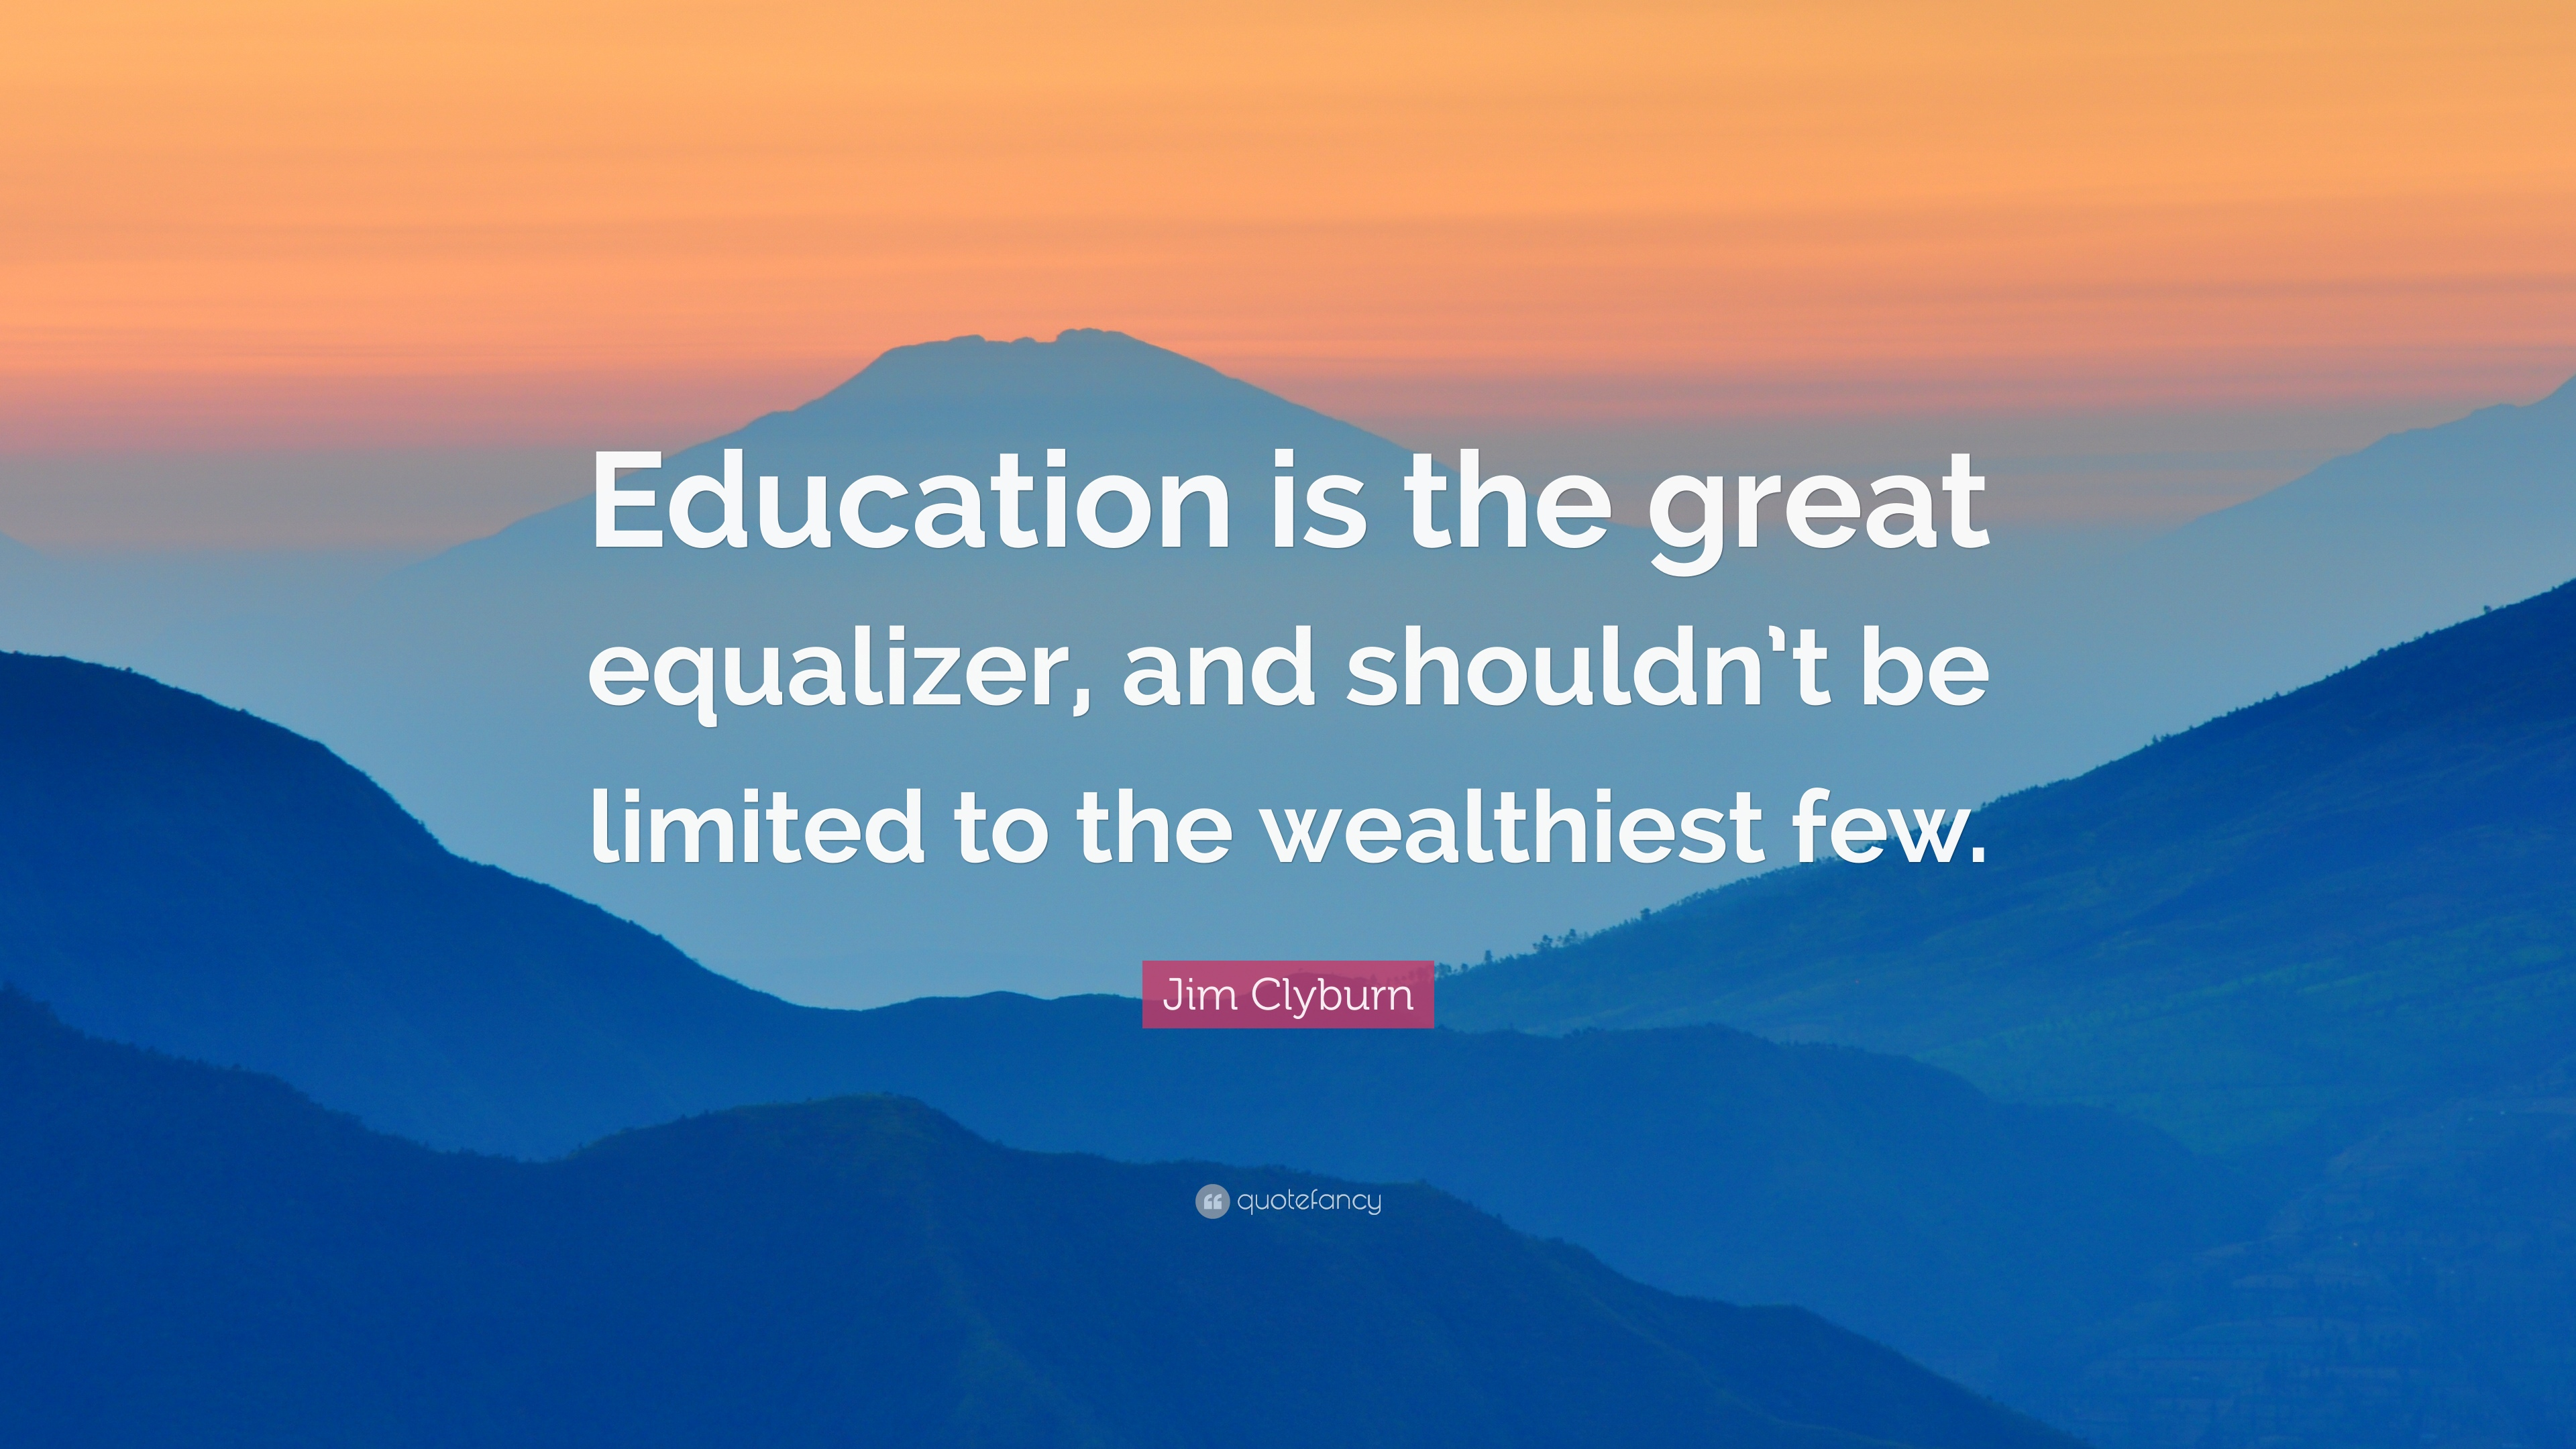 is education the great equalizer Newsone now looks at how education is no longer the great equalizer for black americans.